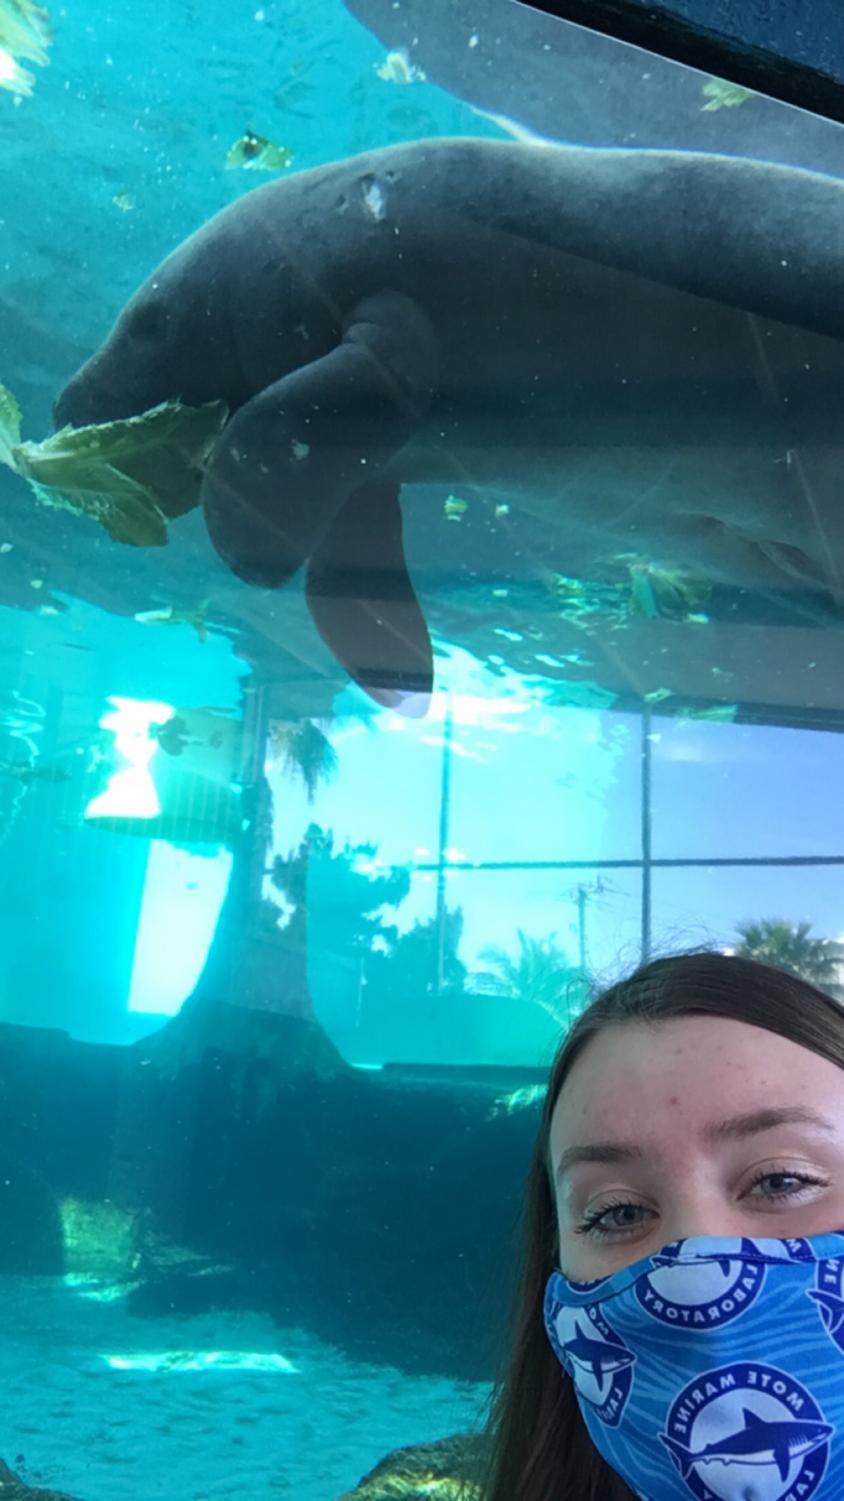 Student poses with manatee